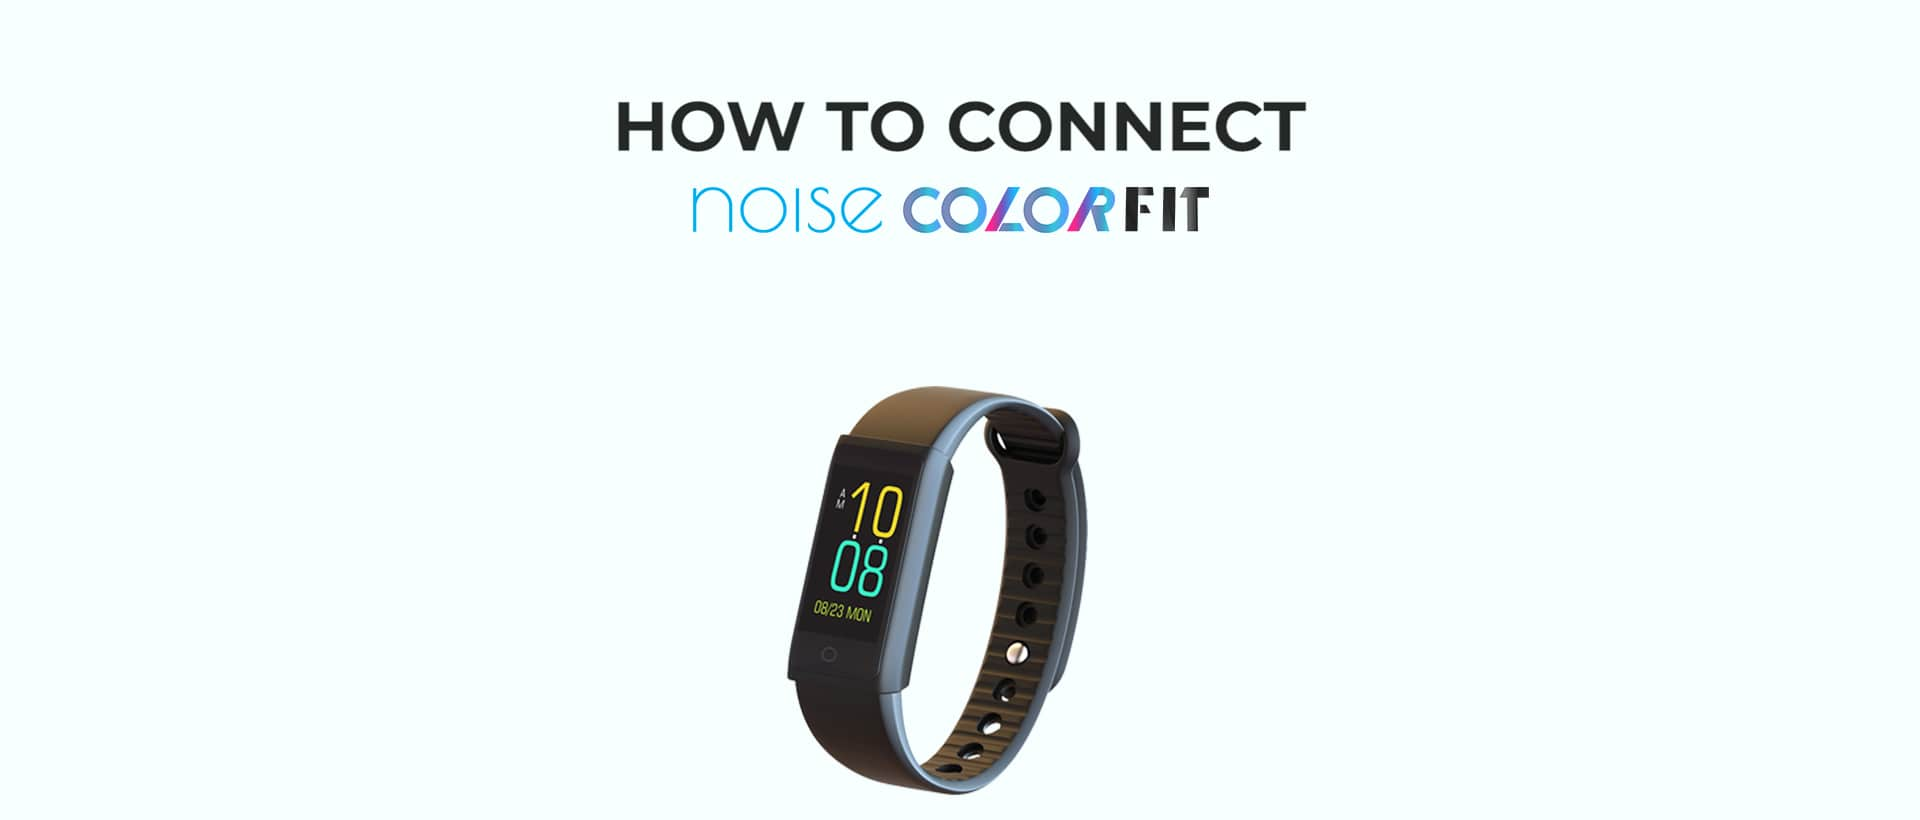 noise colorfit fitness band thumbnail for how to connect video desktop